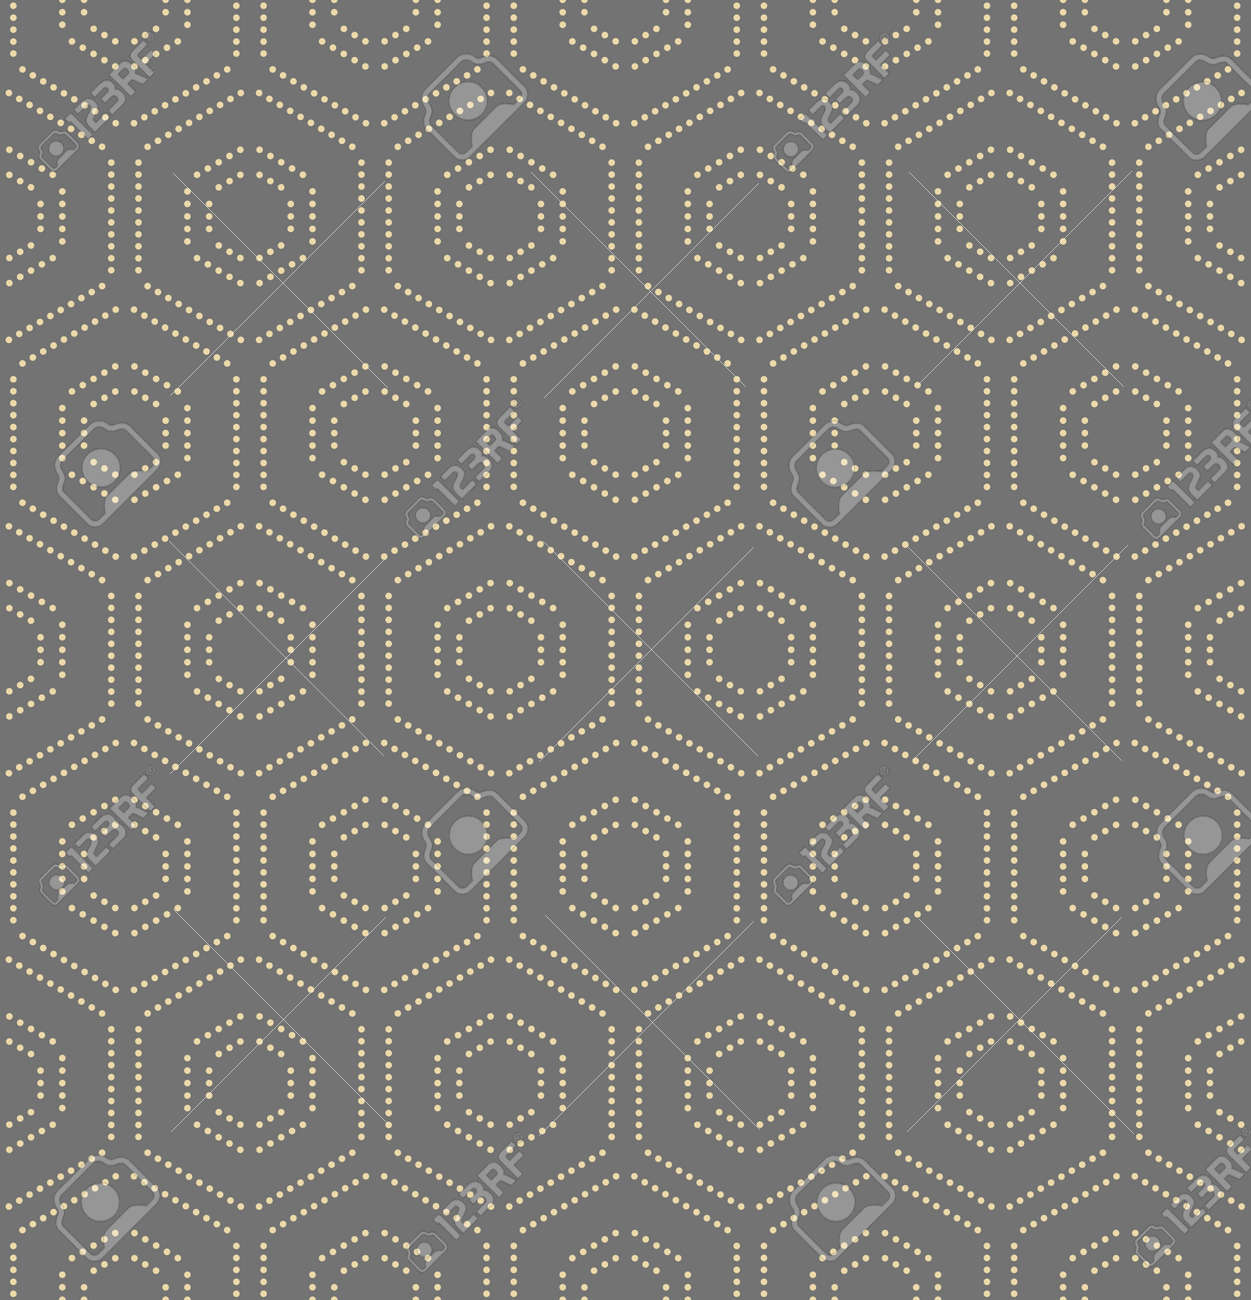 Geometric repeating ornament with hexagonal dotted golden elements. Geometric modern ornament. Seamless abstract modern pattern - 169559485